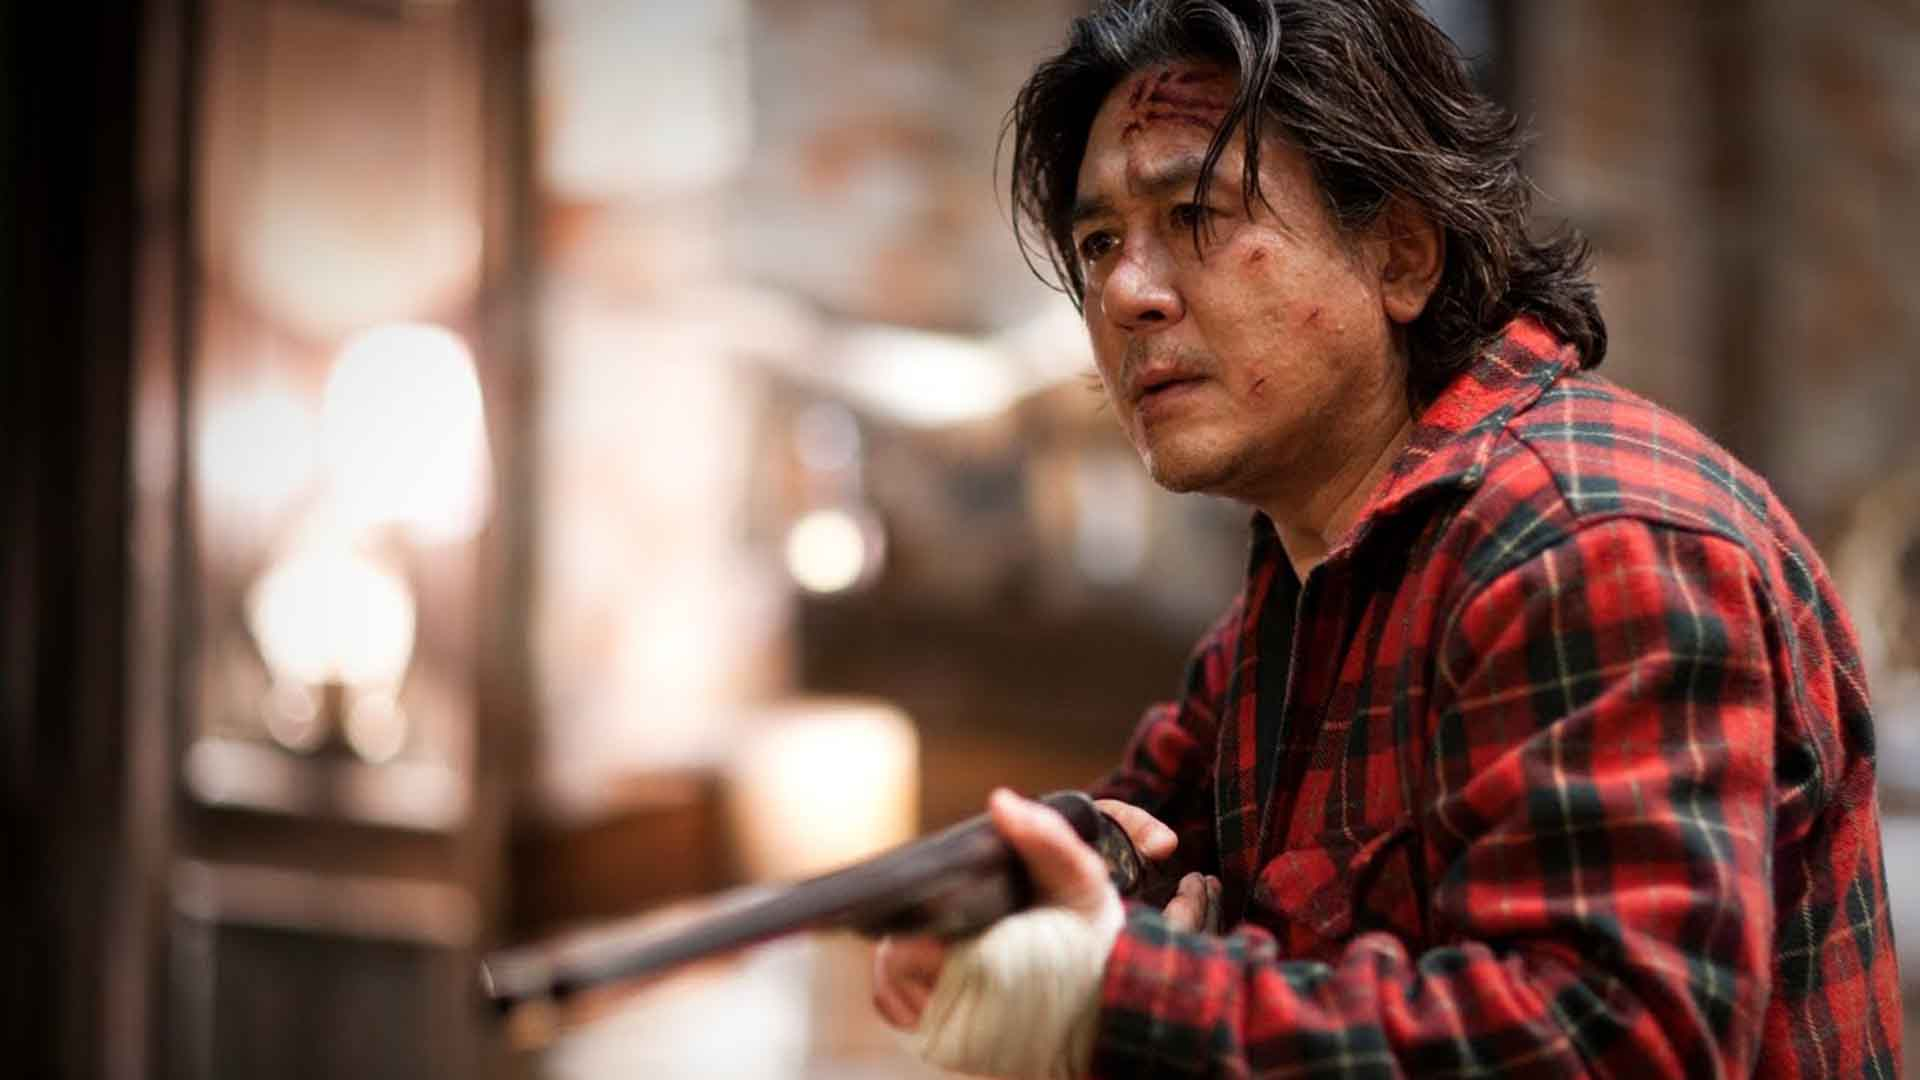 Choi Min Sik holds a gun in I Saw the Devil